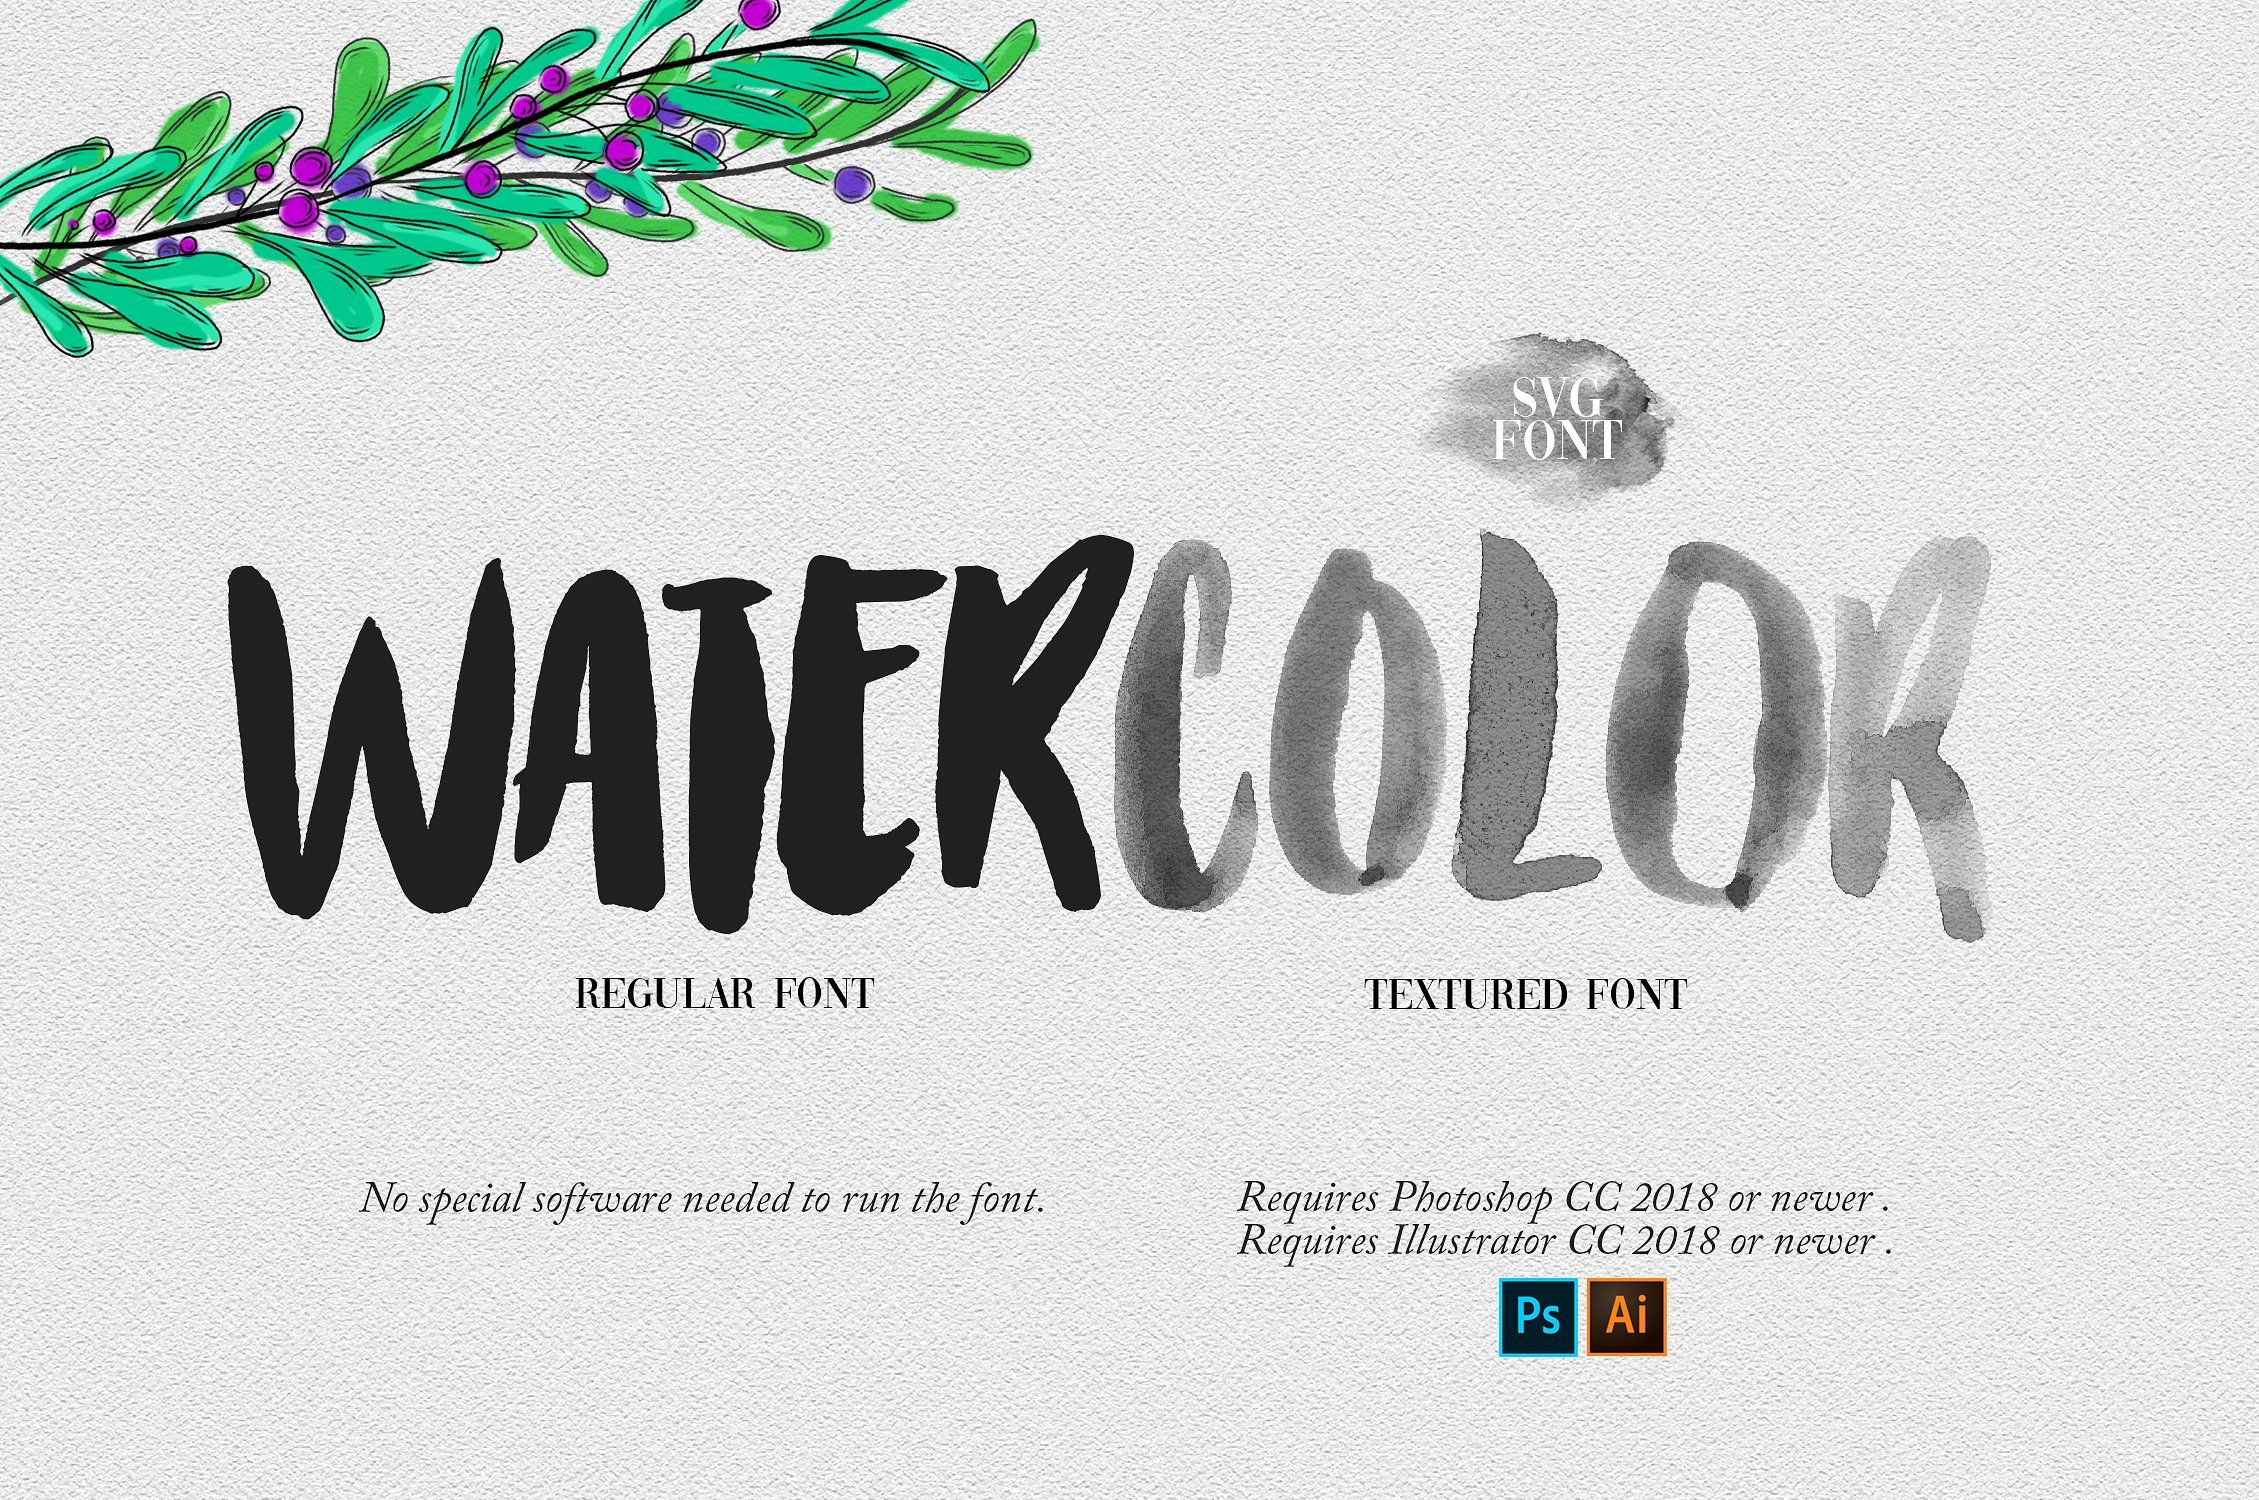 Watercolor Opentype Svg Font By Ryn Pojas On Creativemarket